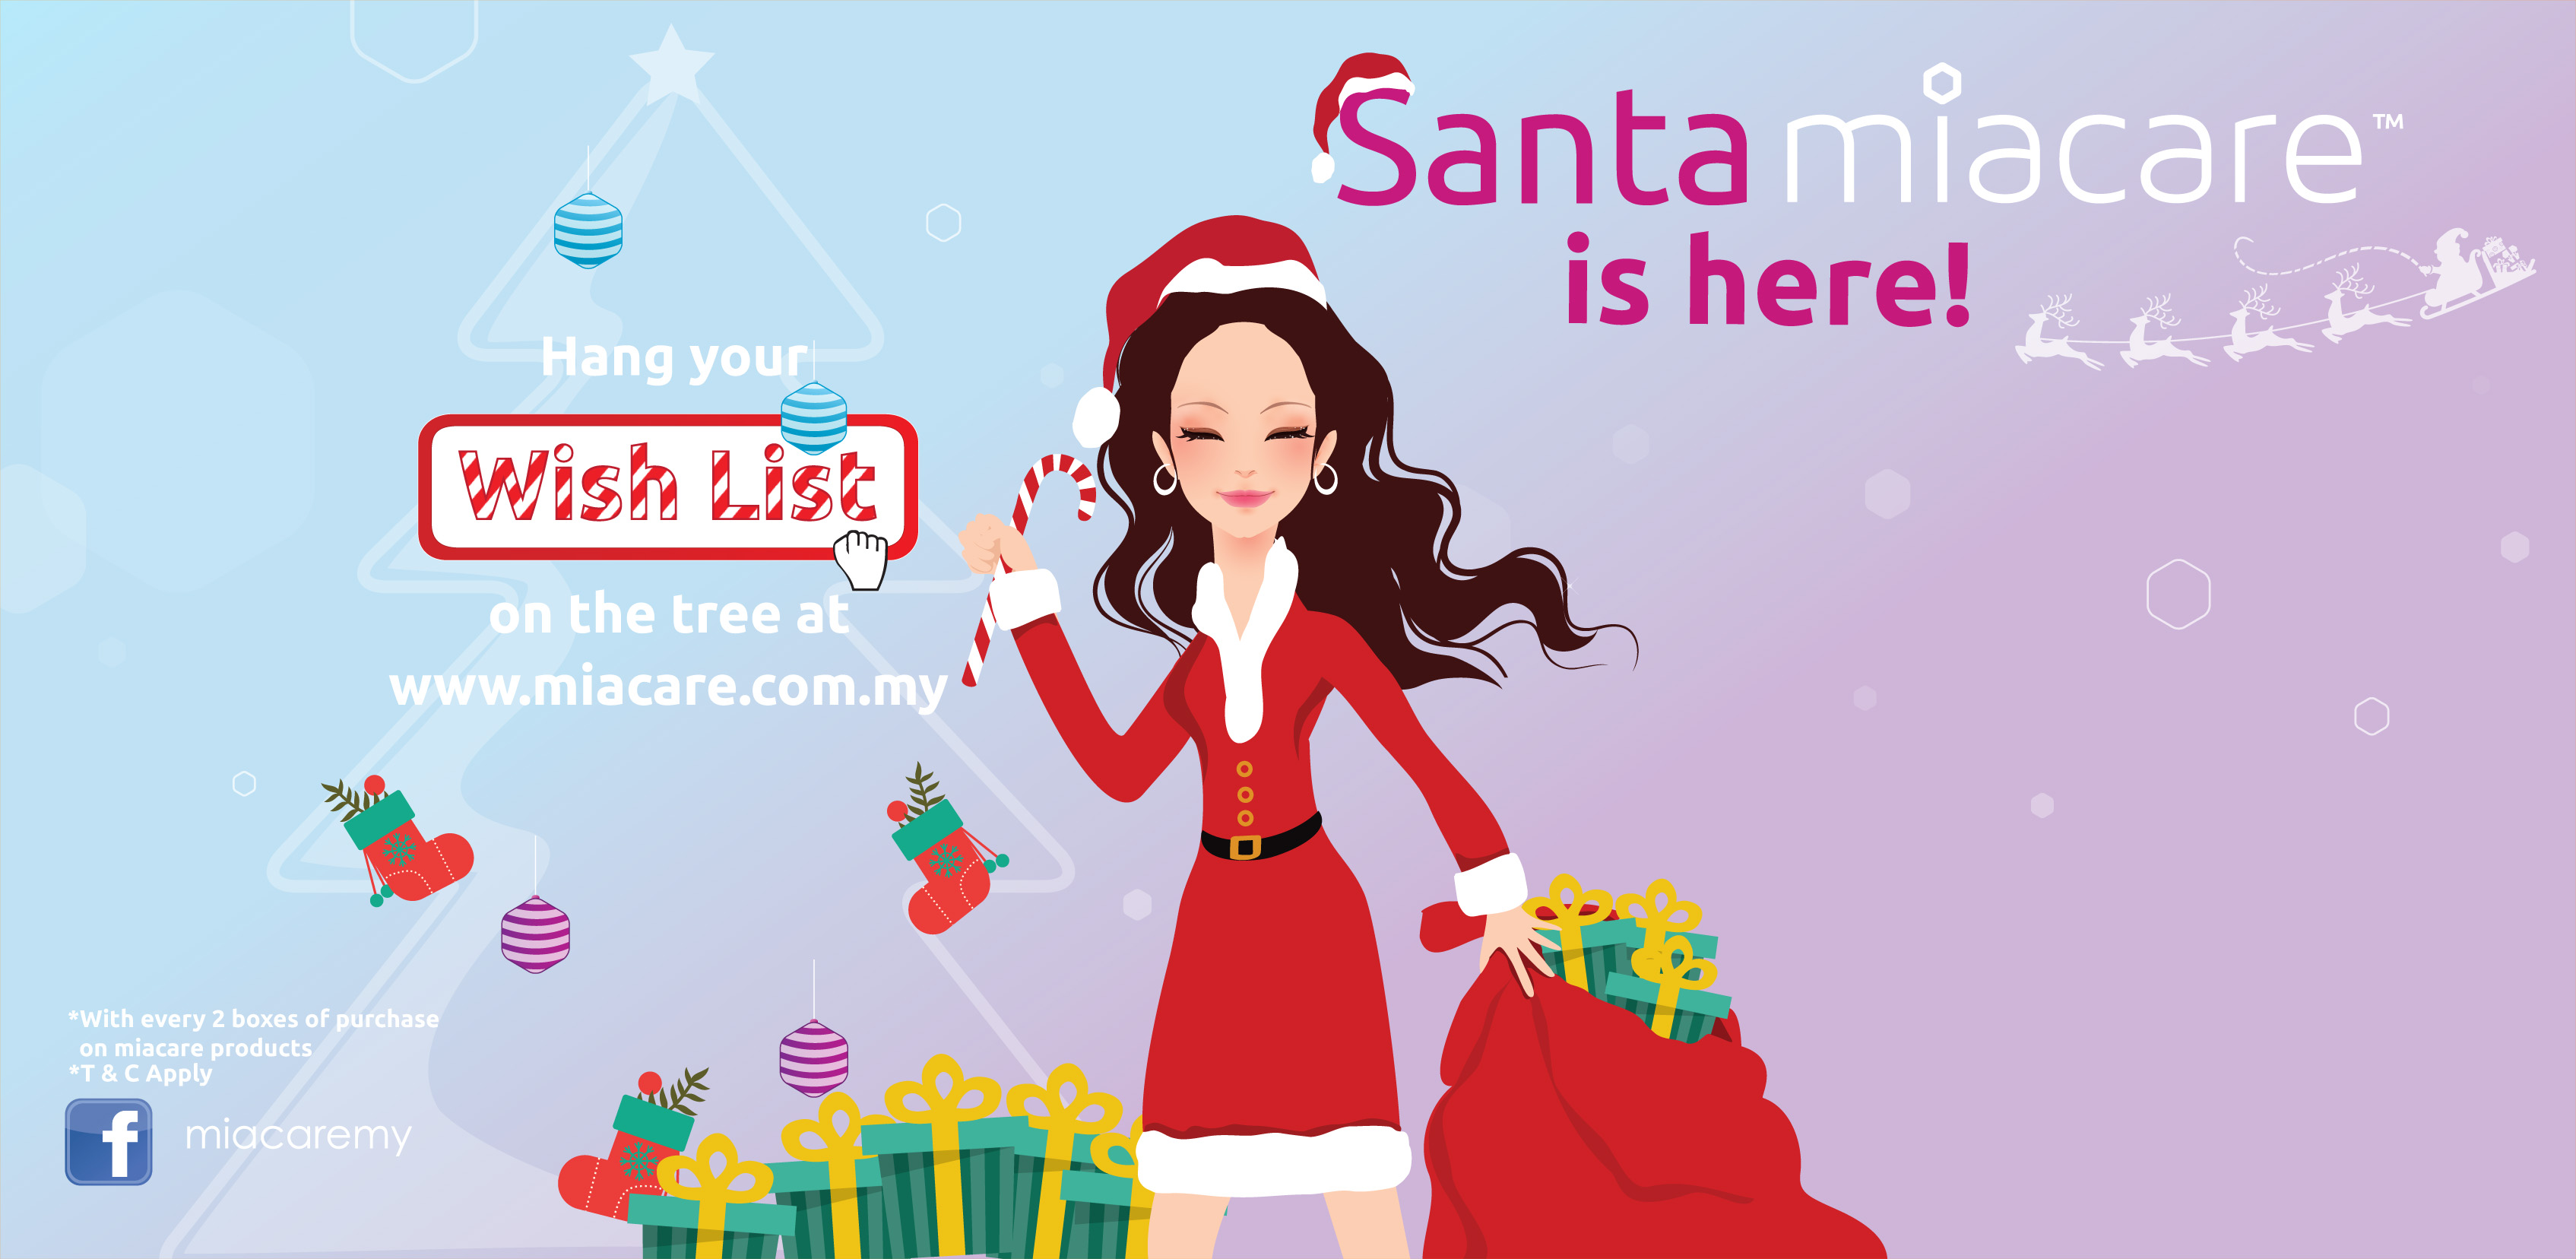 20160922_MIACARE_CHRISTMAS SANTA CLAUS_WEBSITE BANNER_R1 FINAL